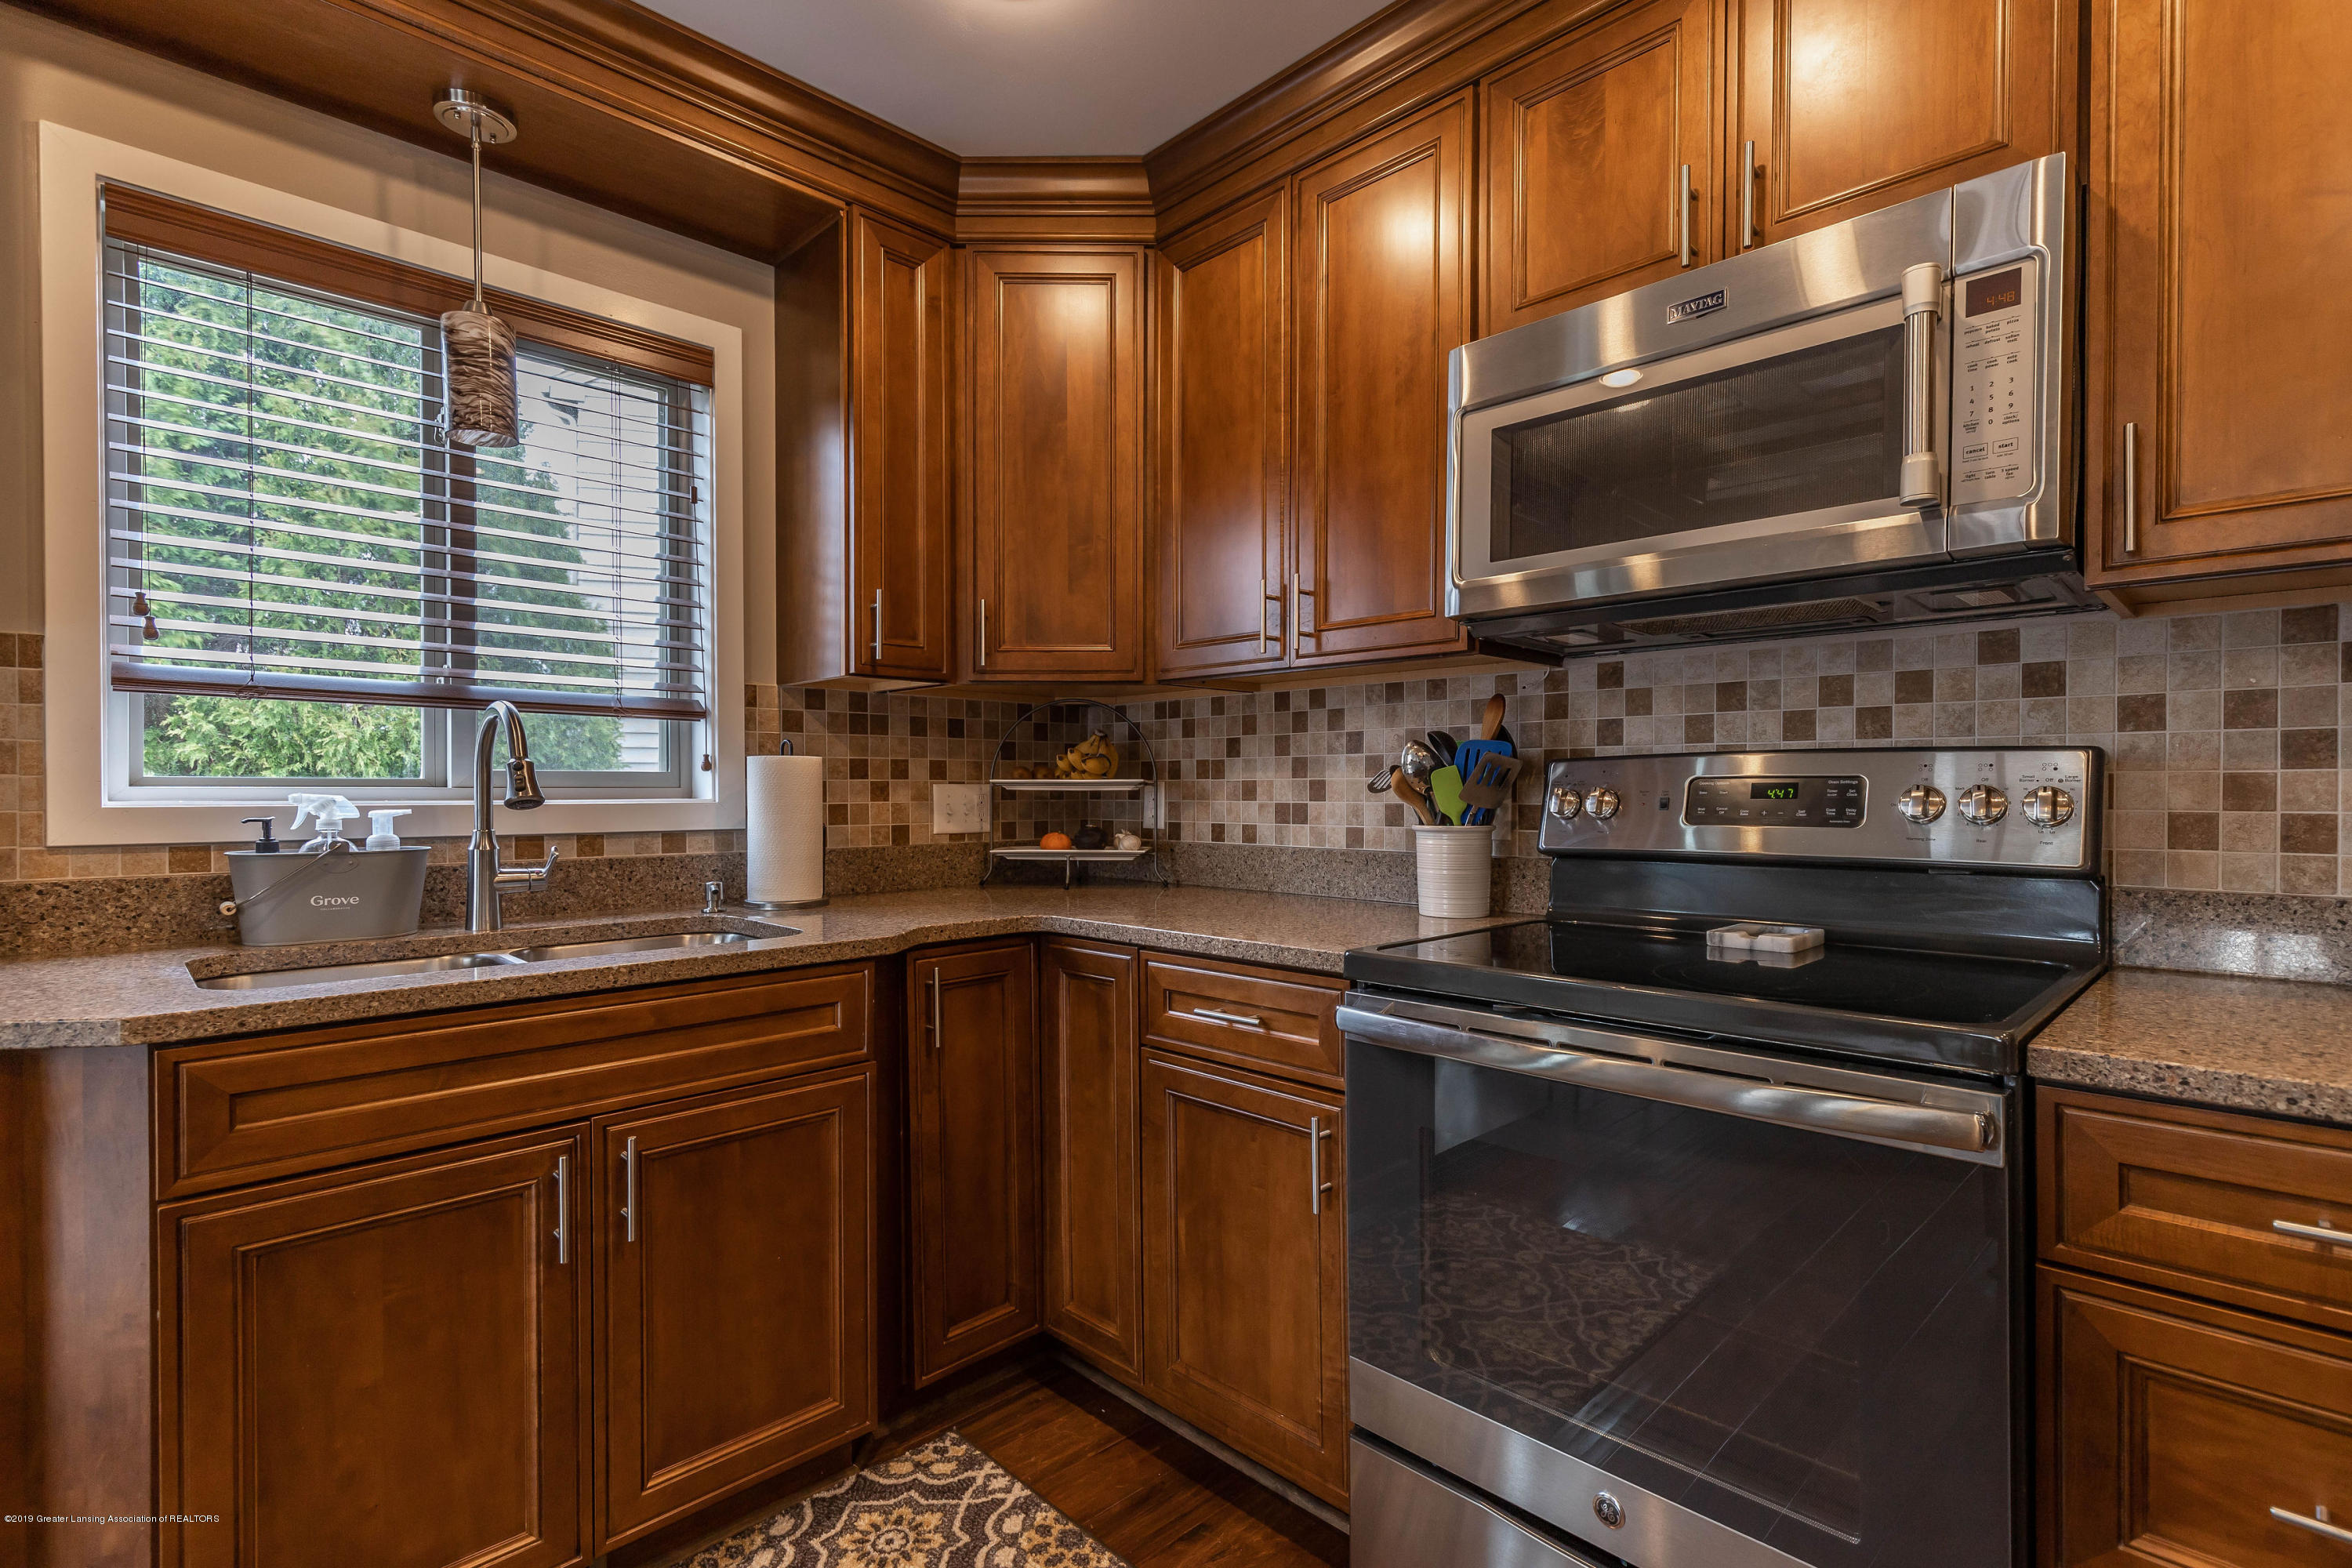 1701 Wyngarden Ln - Kitchen - 31